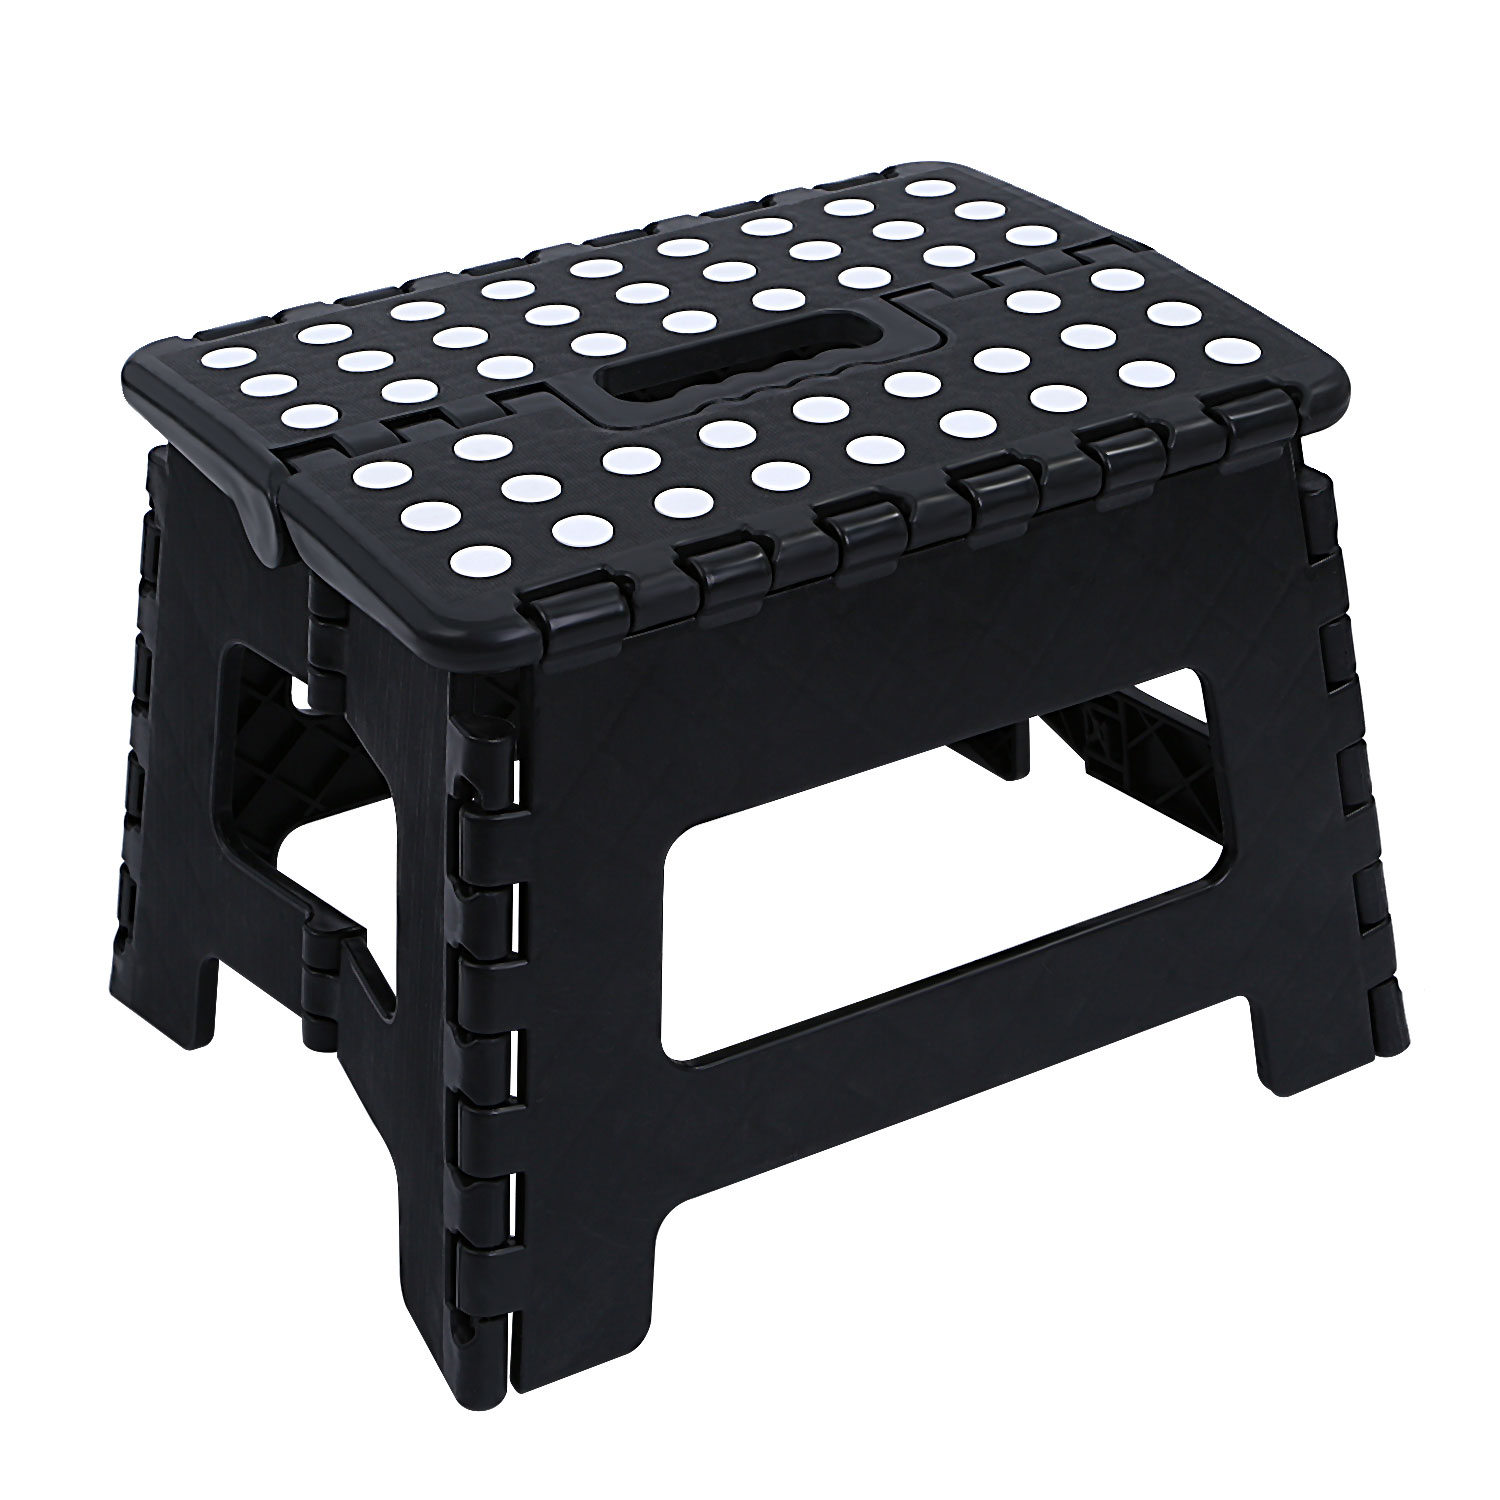 Stepping Stool For Toddlers Kids Bathroom Kitchen Foldable